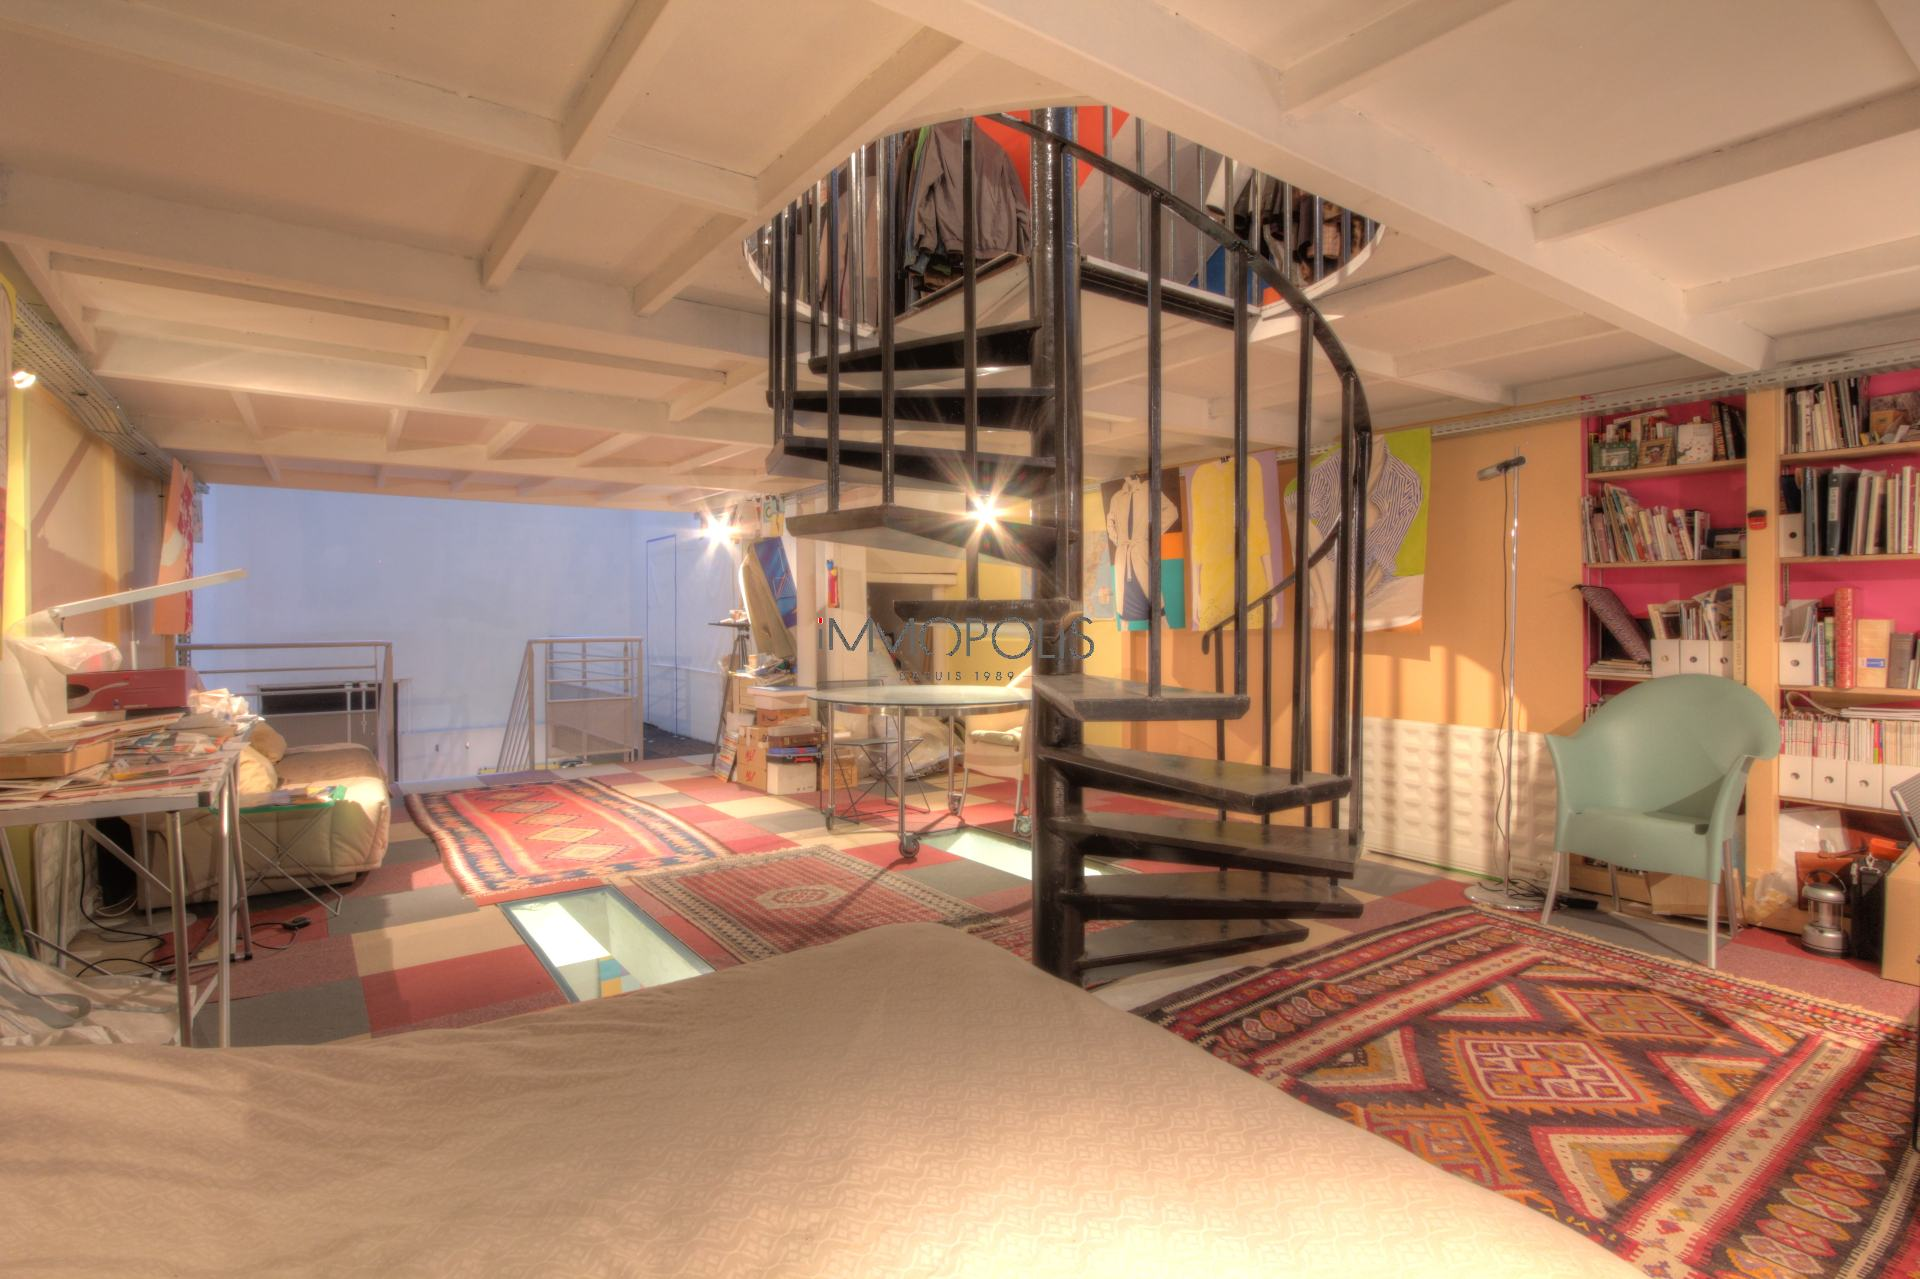 Totally atypical LOFT / ARTIST WORKSHOP, in OPEN-SPACE on three levels with TWO GLASS ROOMS overlooking a quiet courtyard! 9